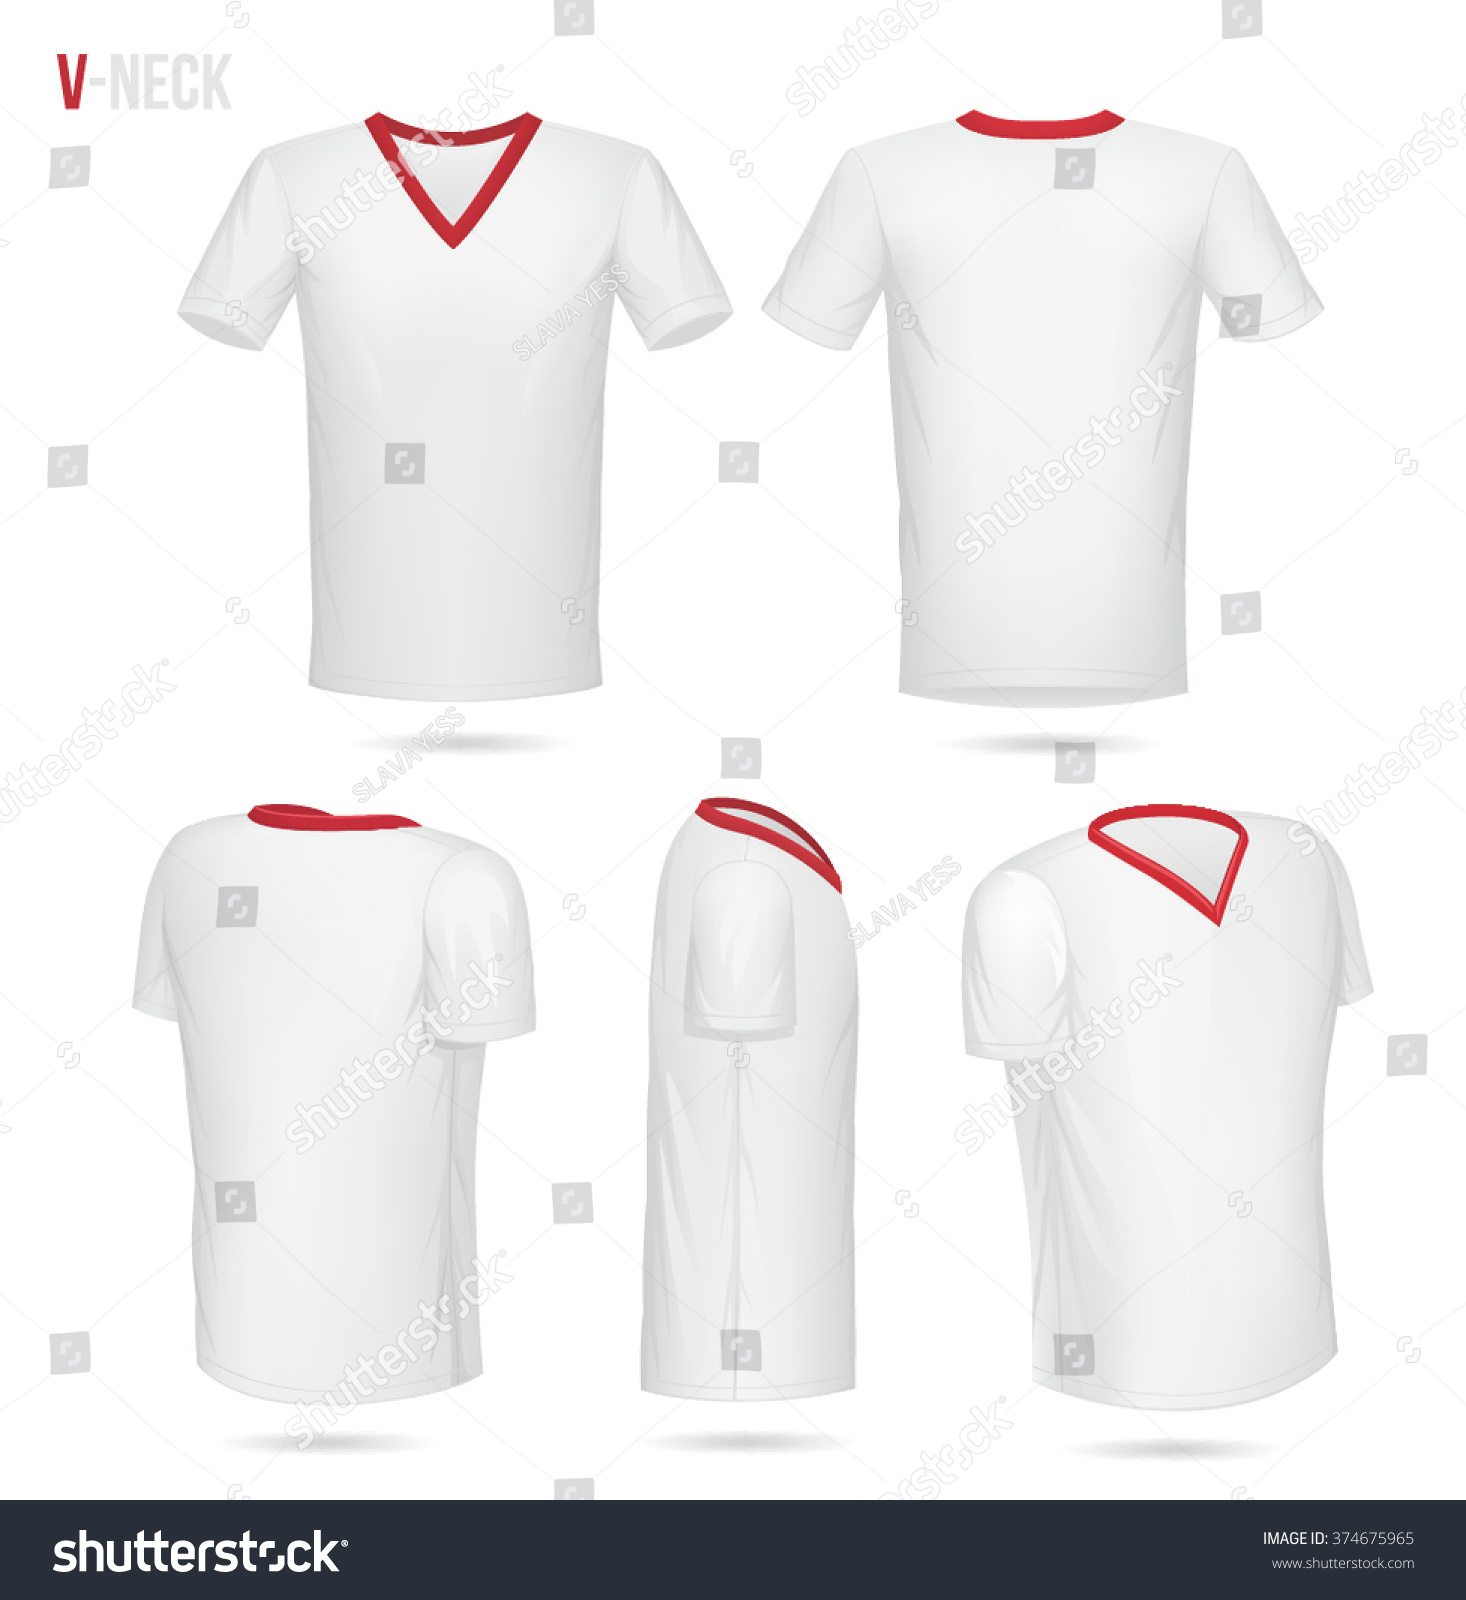 Black t shirt red collar - White V Neck T Shirt With Red Collar 5 Sides Front